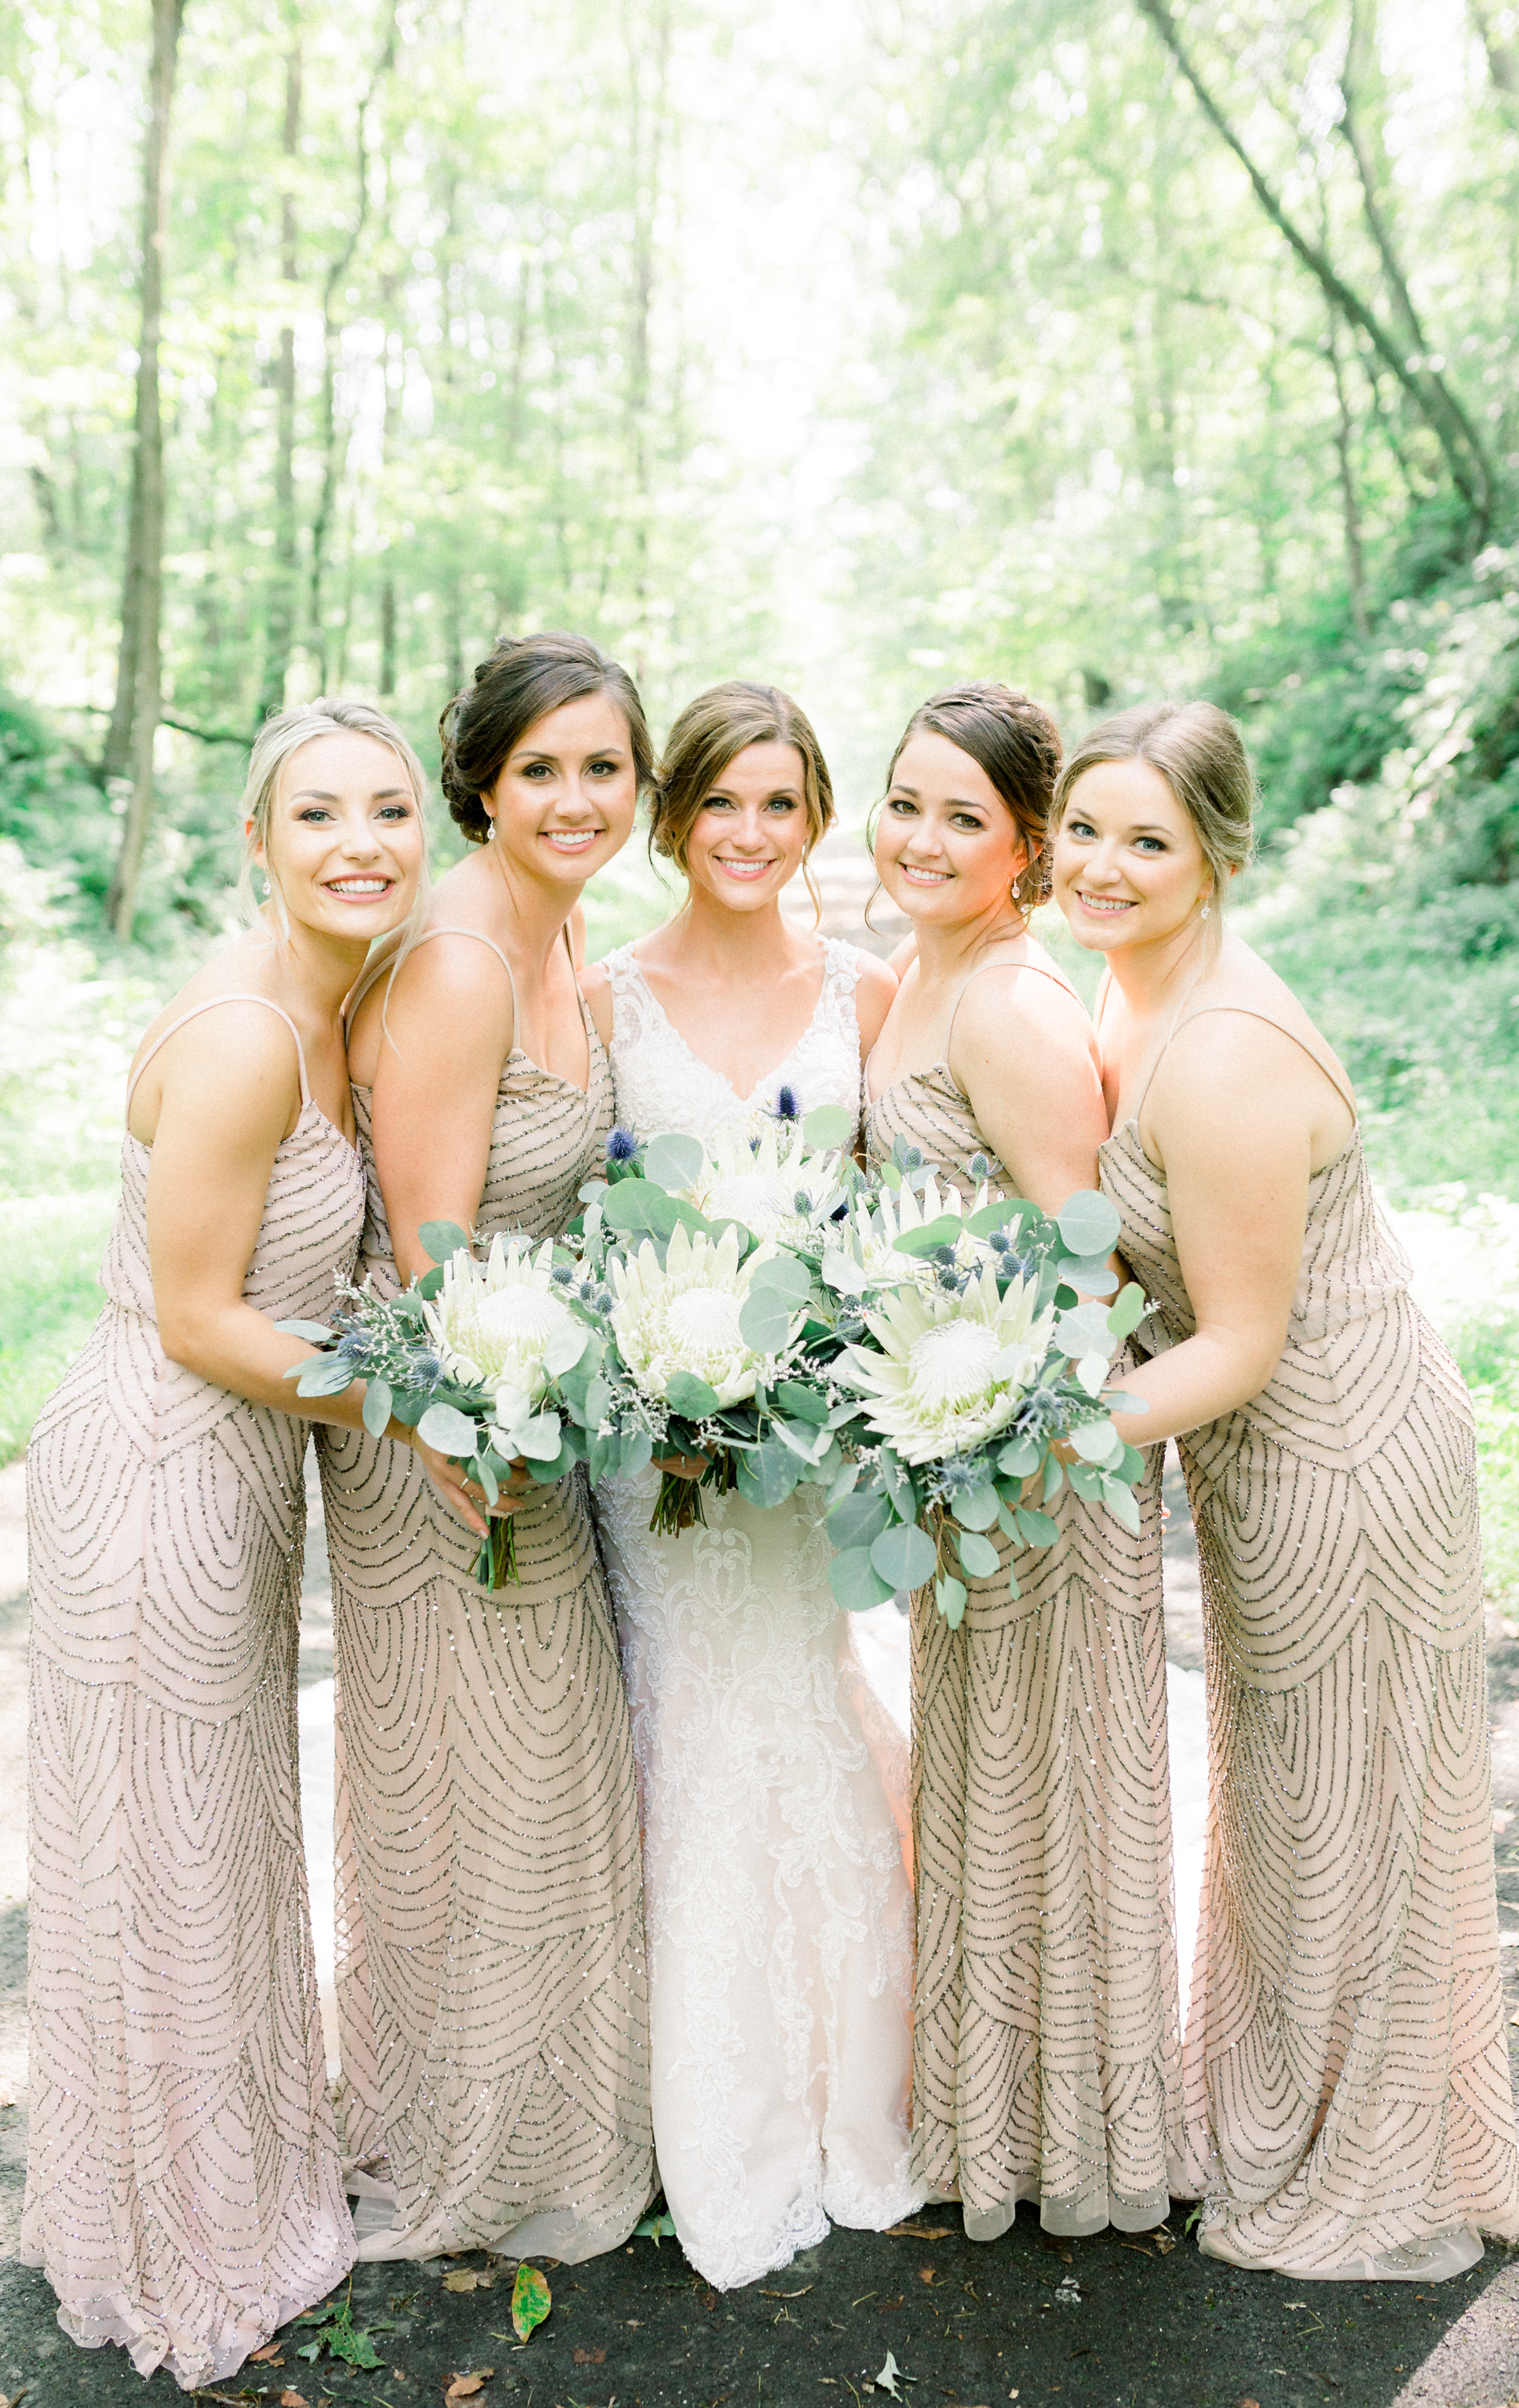 Bride and bridesmaids in Adrianna Papell dresses take wedding photos for Pittsburgh wedding planned by Exhale Events. Find more wedding inspiration at exhale-events.com!